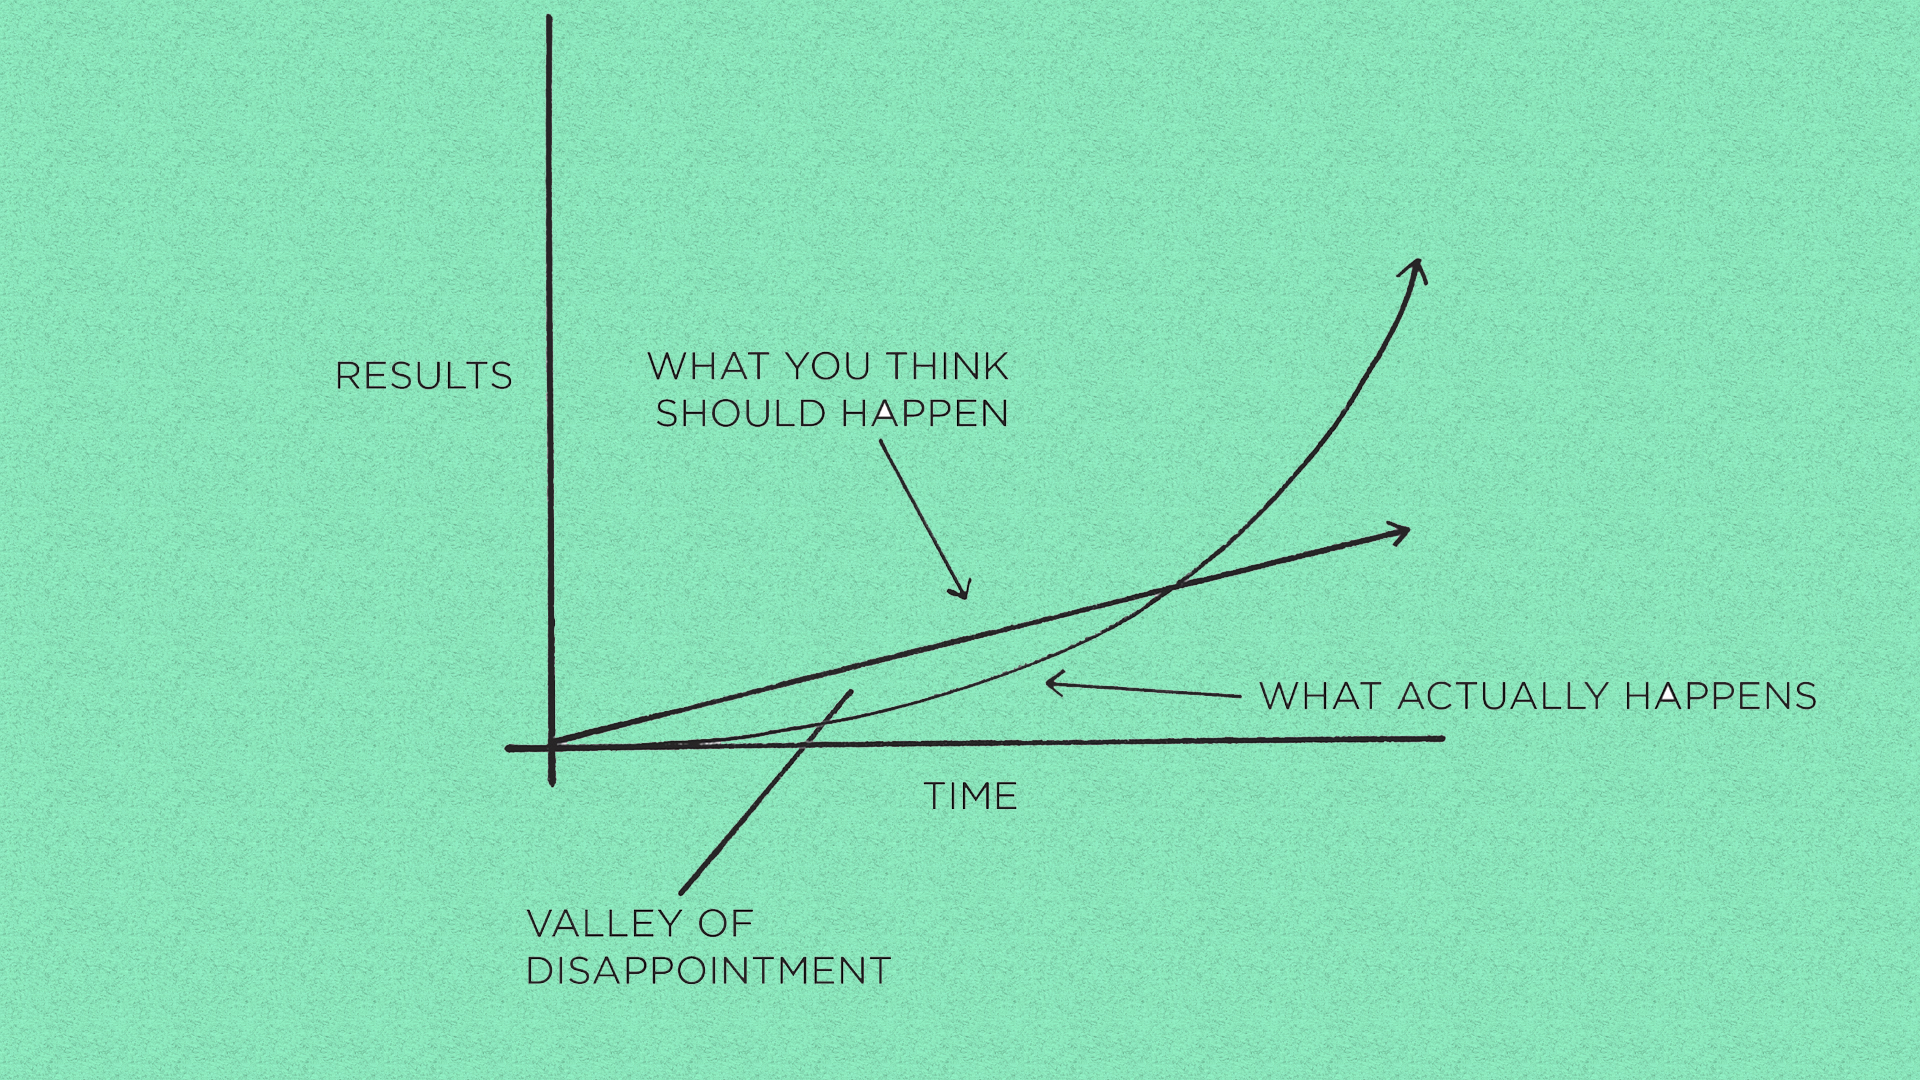 [Image] We often expect progress to be linear. At the very least, we hope it will come quickly. In reality, the results of our efforts are often delayed. And for that, we have to be patient.